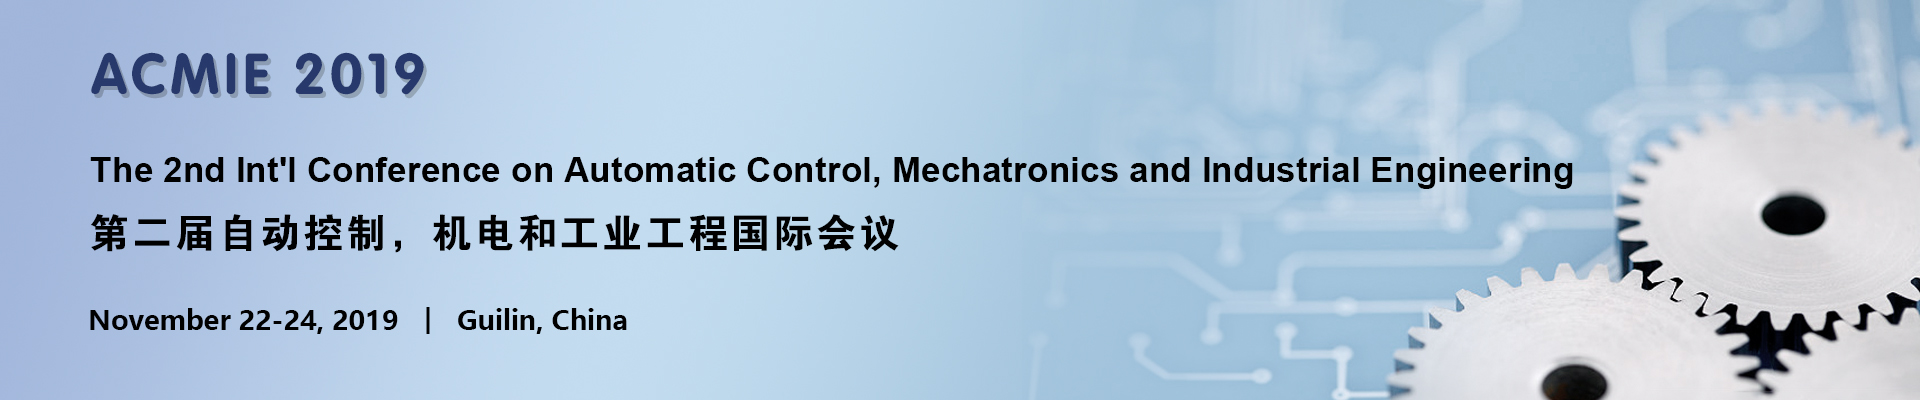 The 2nd Int'l Conference on Automatic Control, Mechatronics and Industrial Engineering (ACMIE 2019)